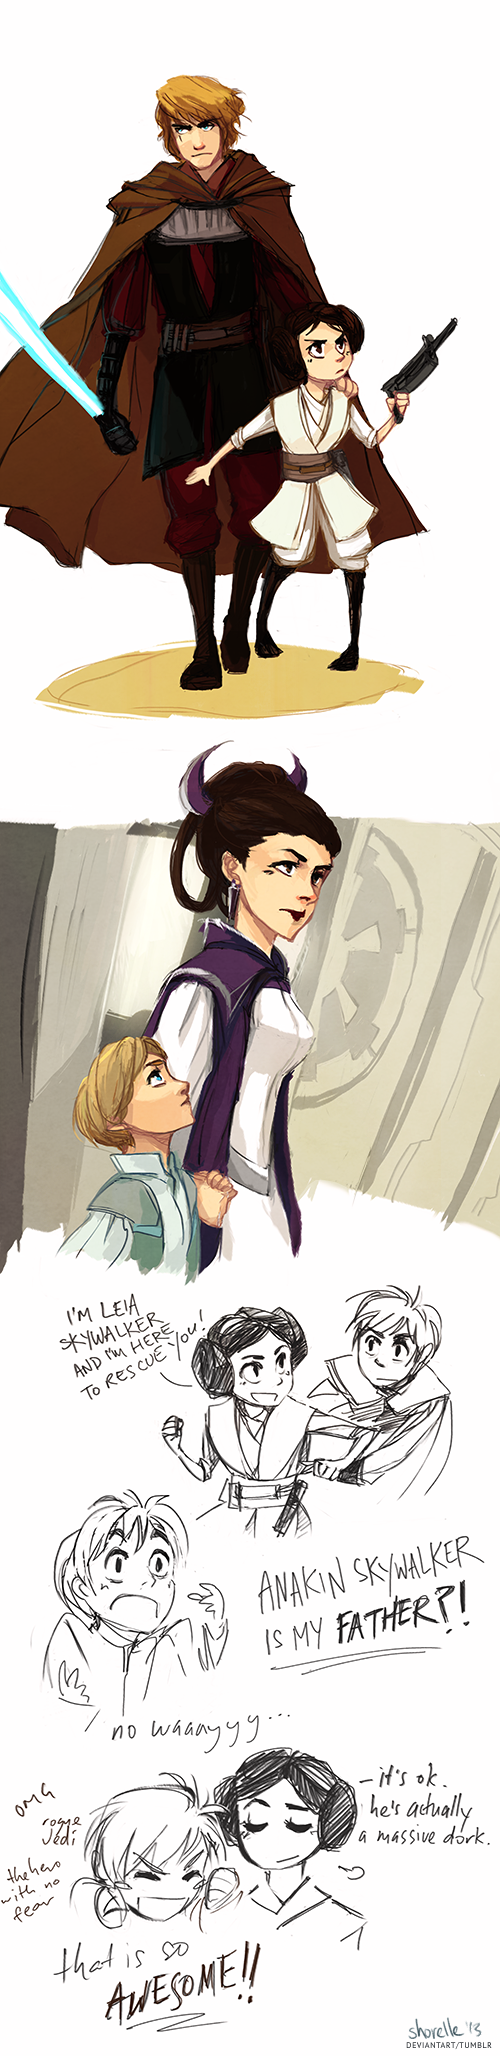 star wars rebel AU by shorelle This is an AU where Anakin never turned to the darks side, however the galaxy still became an empire. because of this, Anakin took his daughter, Leia, and left to fight with the rebels. Padme on the other hand raised Luke on Coruscant where she was a senator/spy for the rebels. Somehow Luke and Leia met and found out they were siblings. Luke is very excited about who his father is.